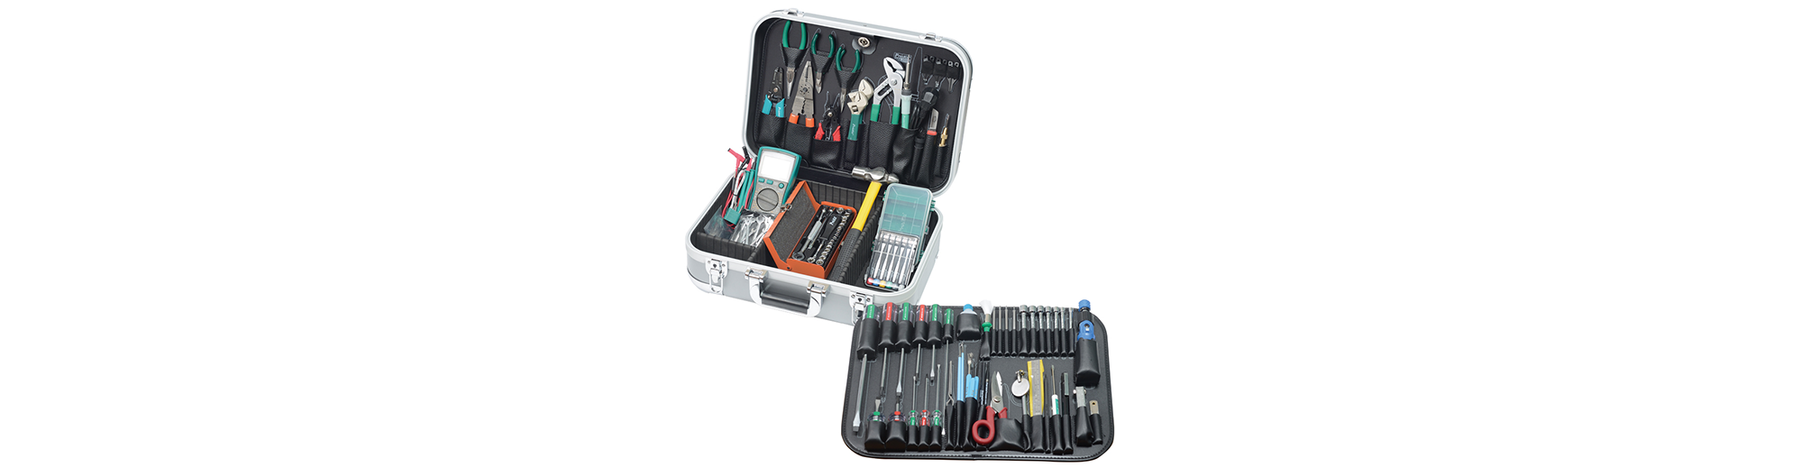 Tool Tuesday – Pro's Kit/Eclipse Tool Kits